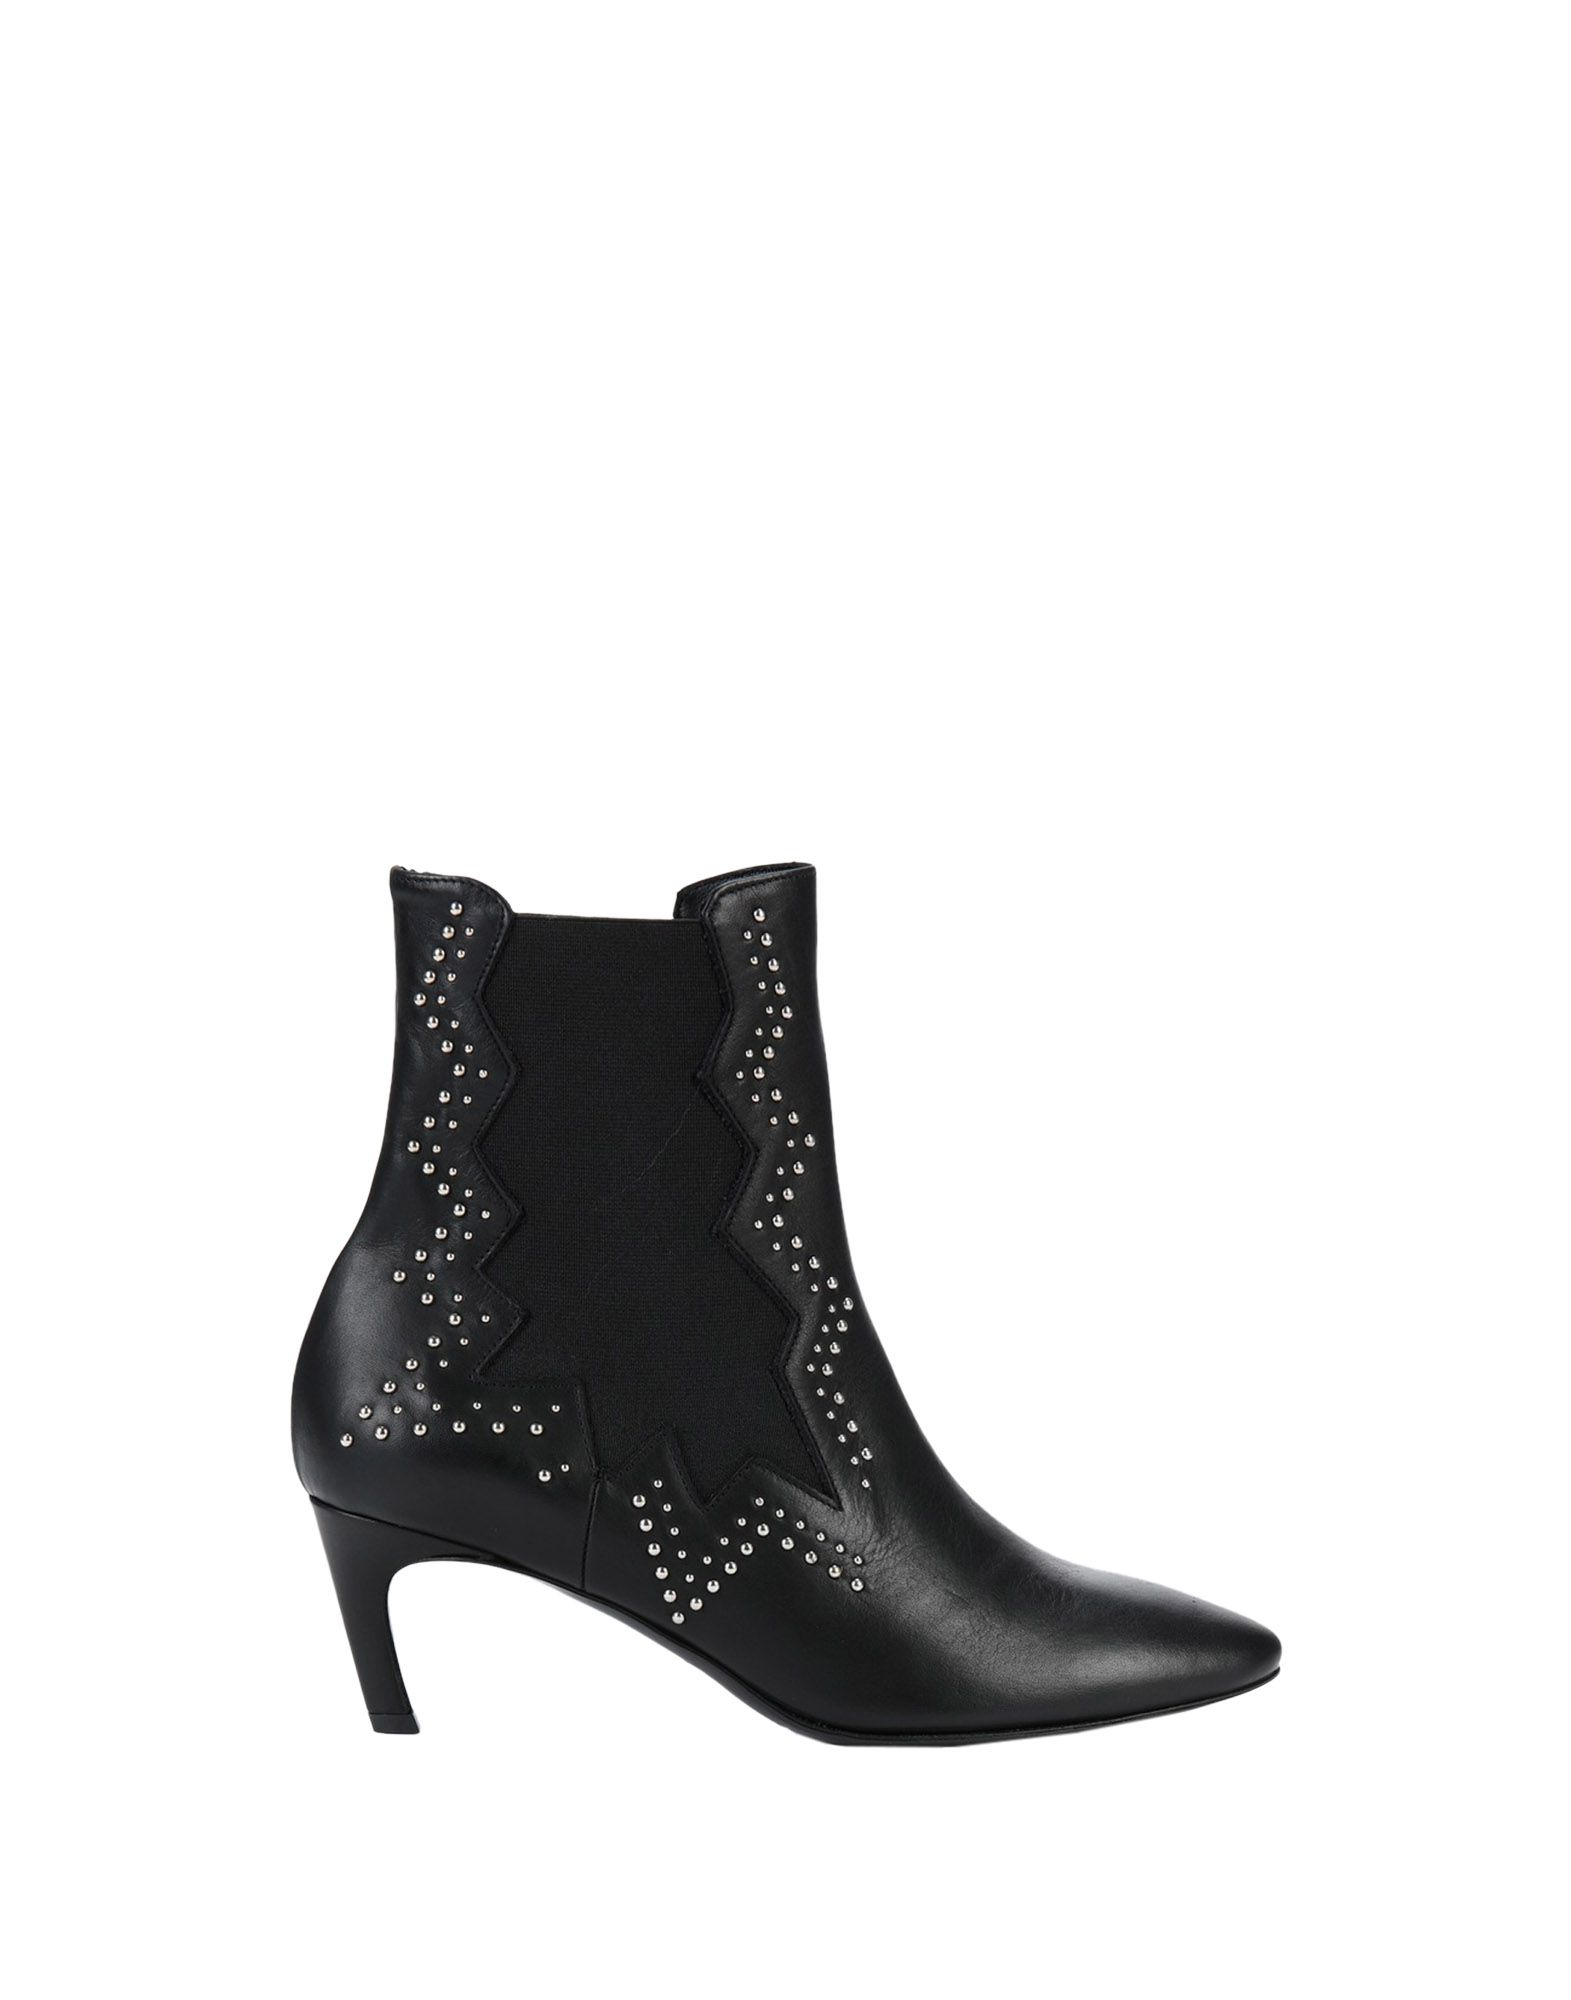 Bottine Marc Ellis Femme - Bottines Marc Ellis Noir Confortable et belle